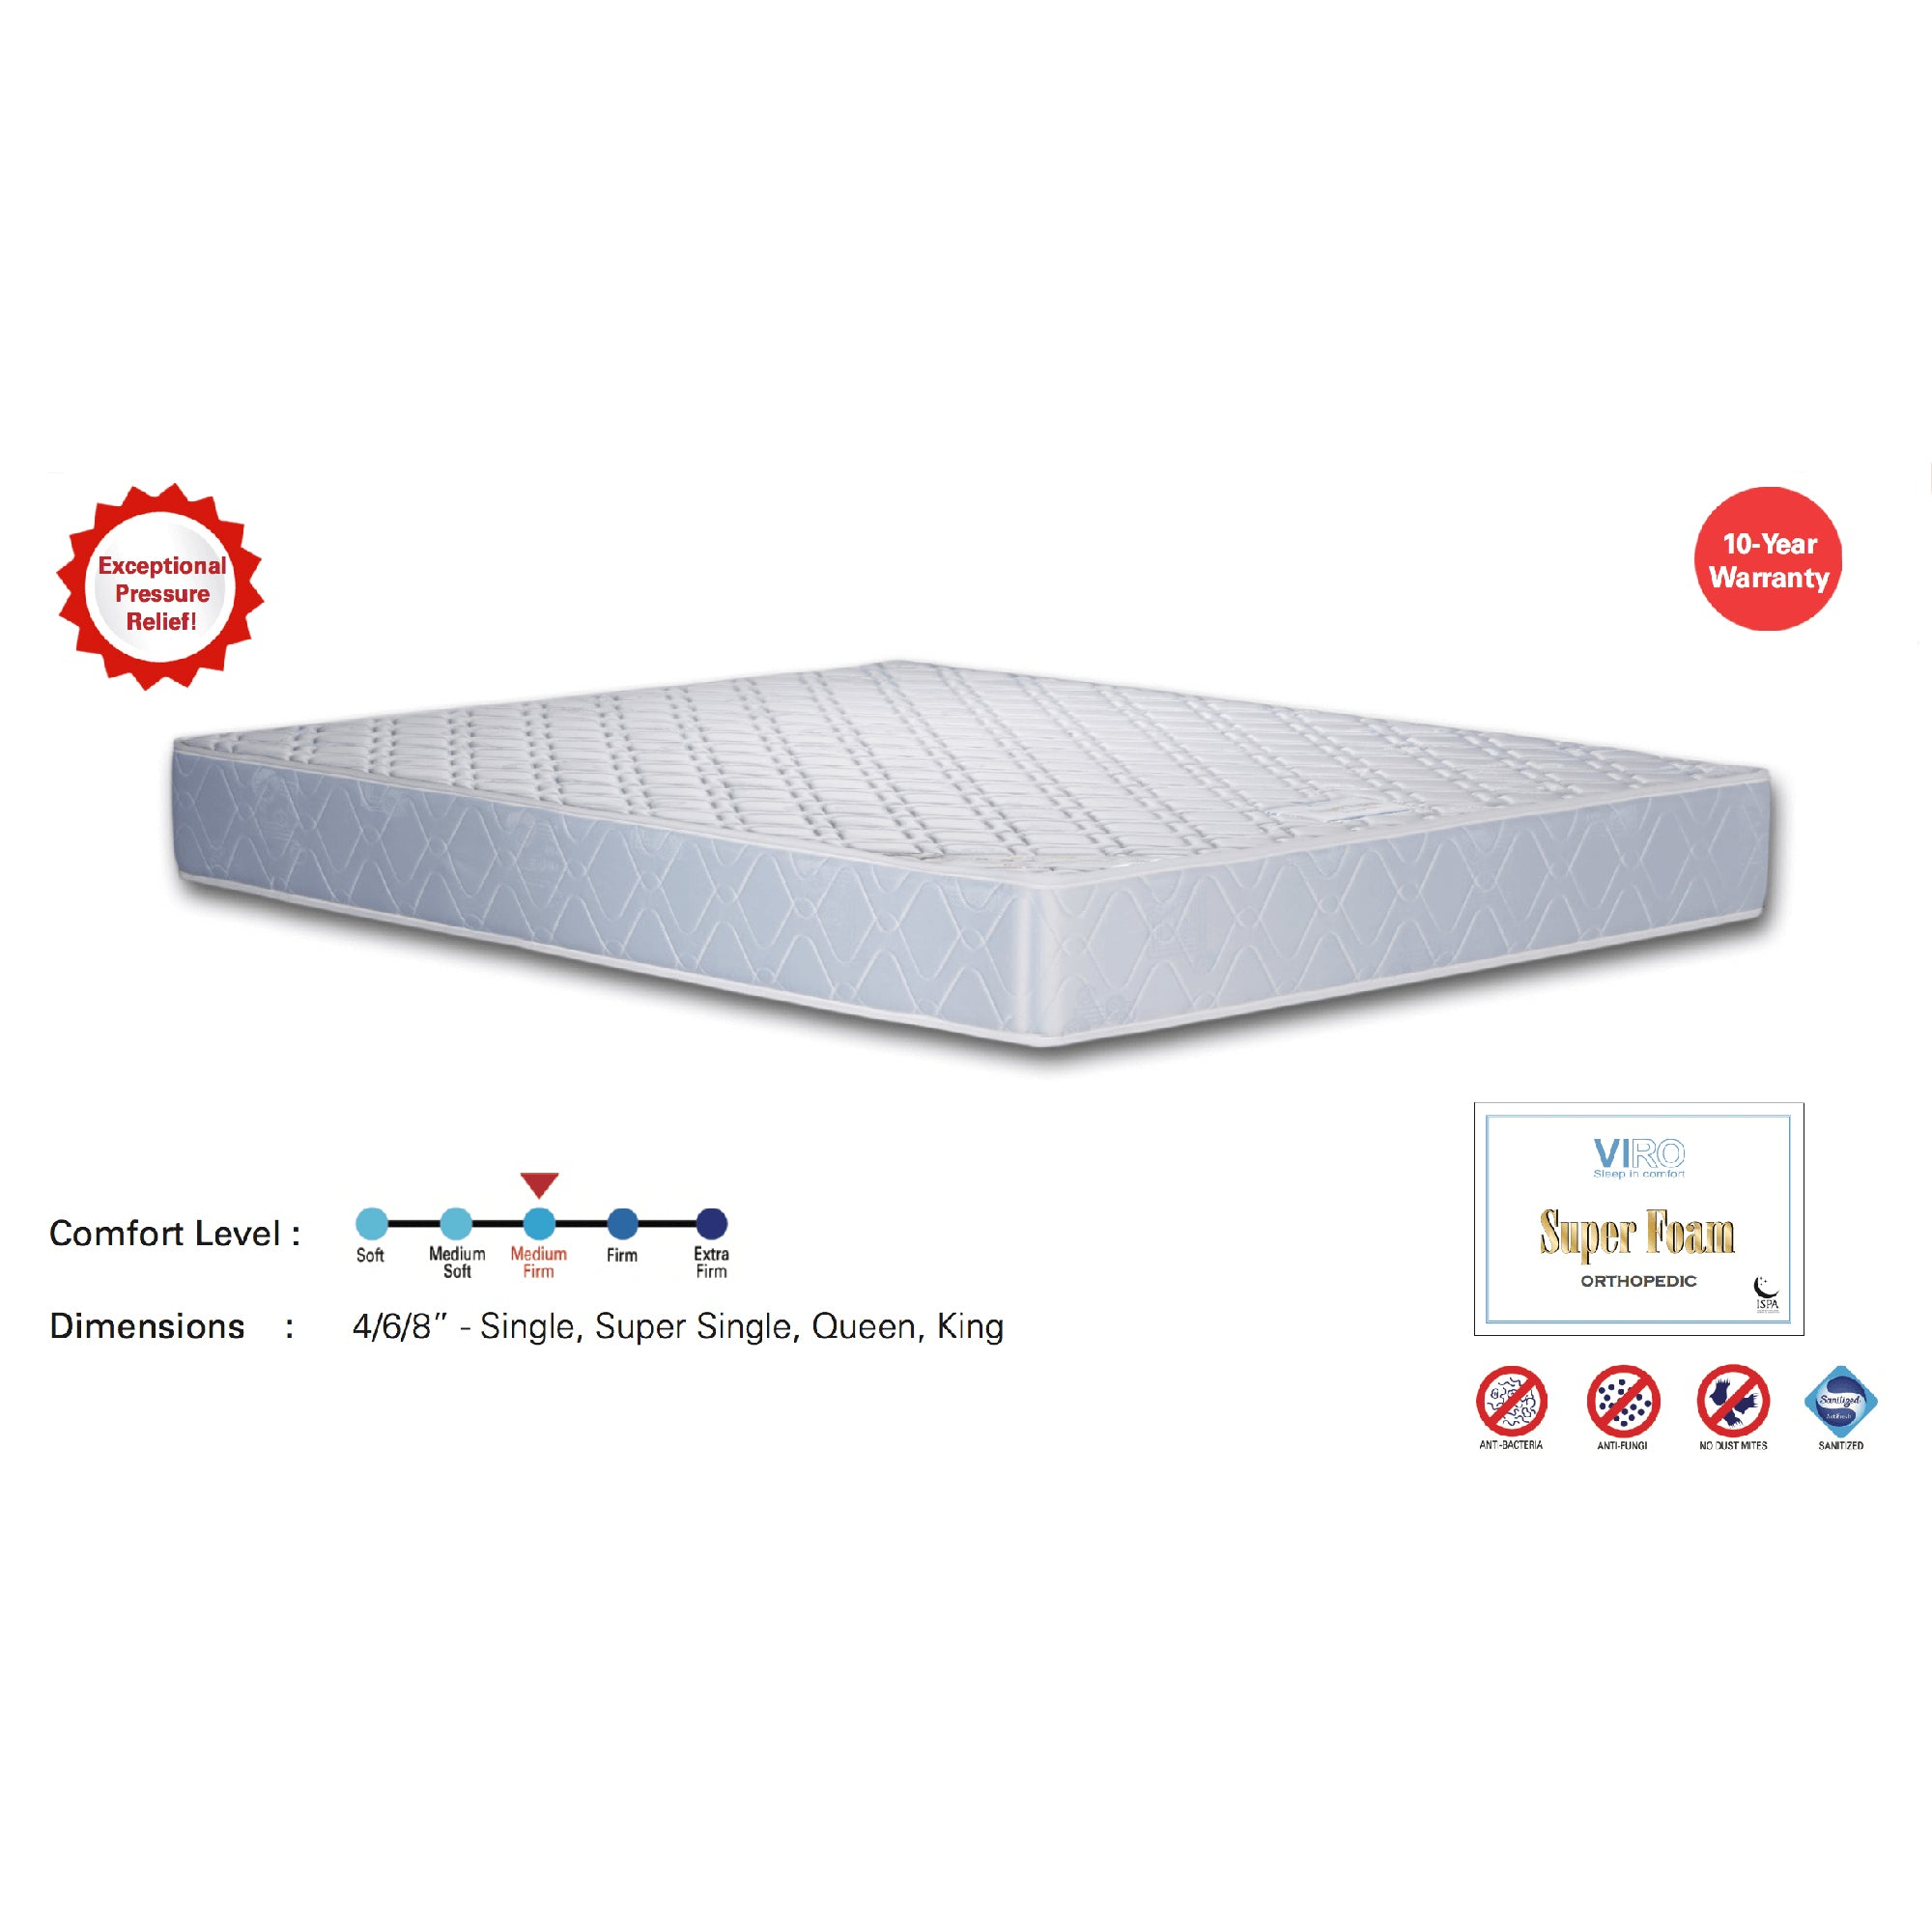 Viro Super Foam Quilted Mattress (3.5 Feet Super Single Size x 4